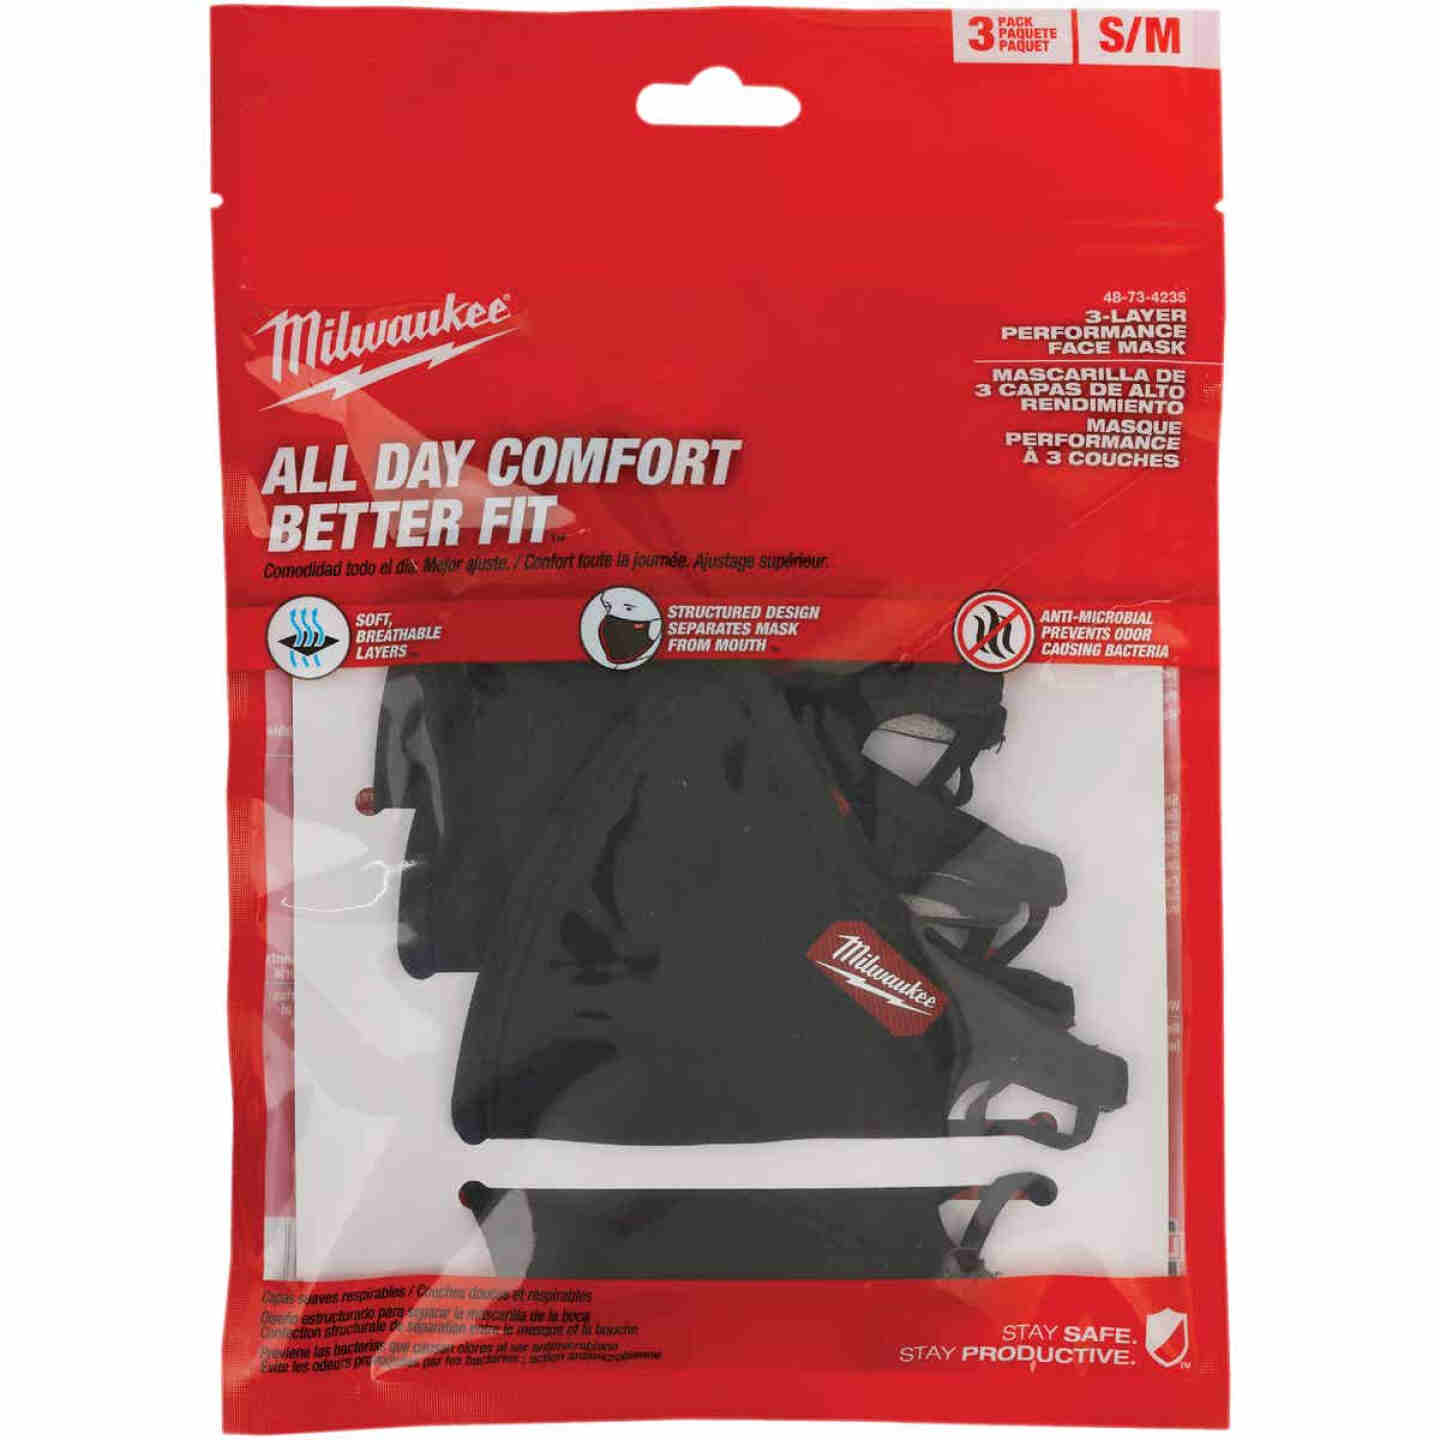 Milwaukee S/M 3-Layer Washable Performance Dust & Face Mask (3-Pack) Image 5